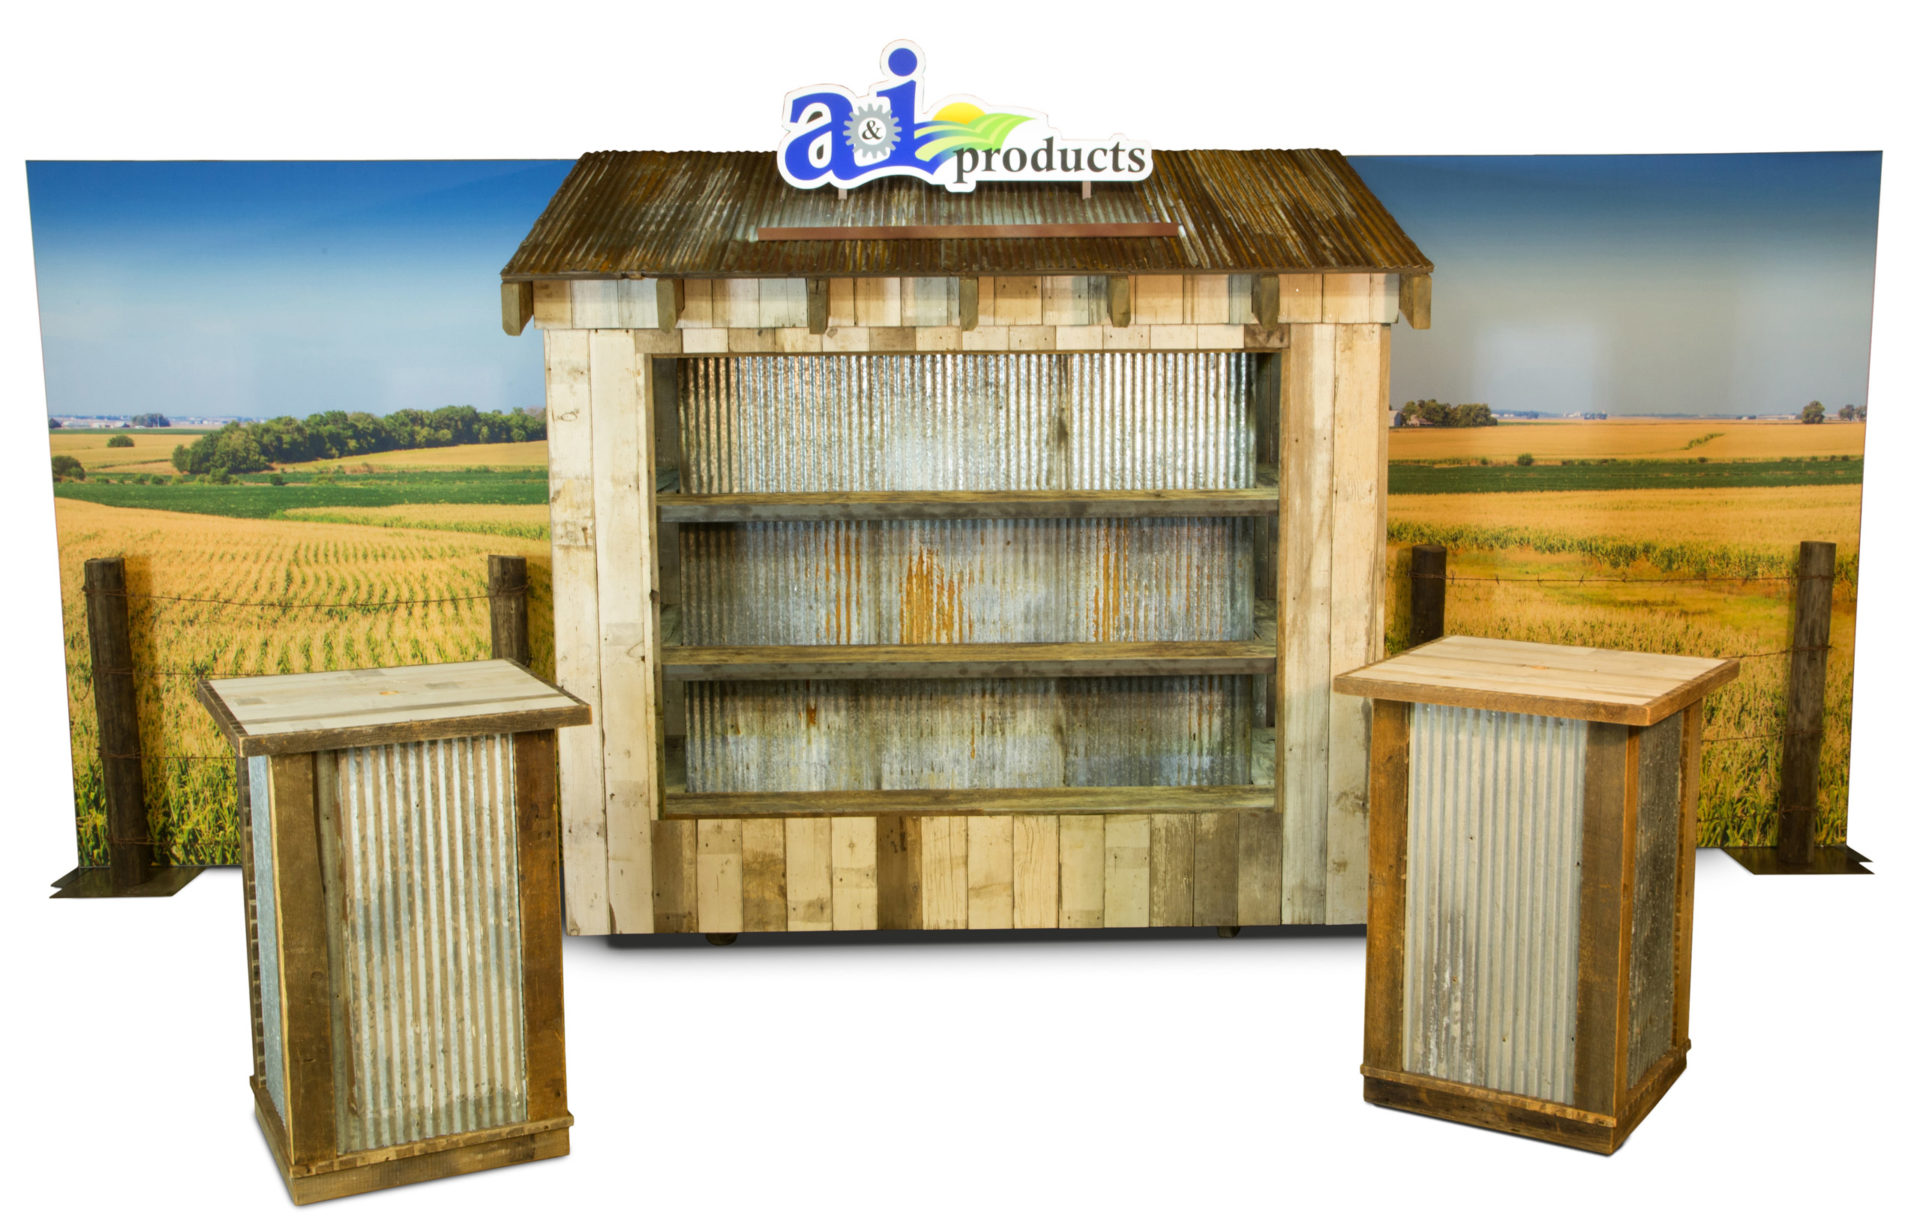 A&I Products Tradeshow Wooden Display